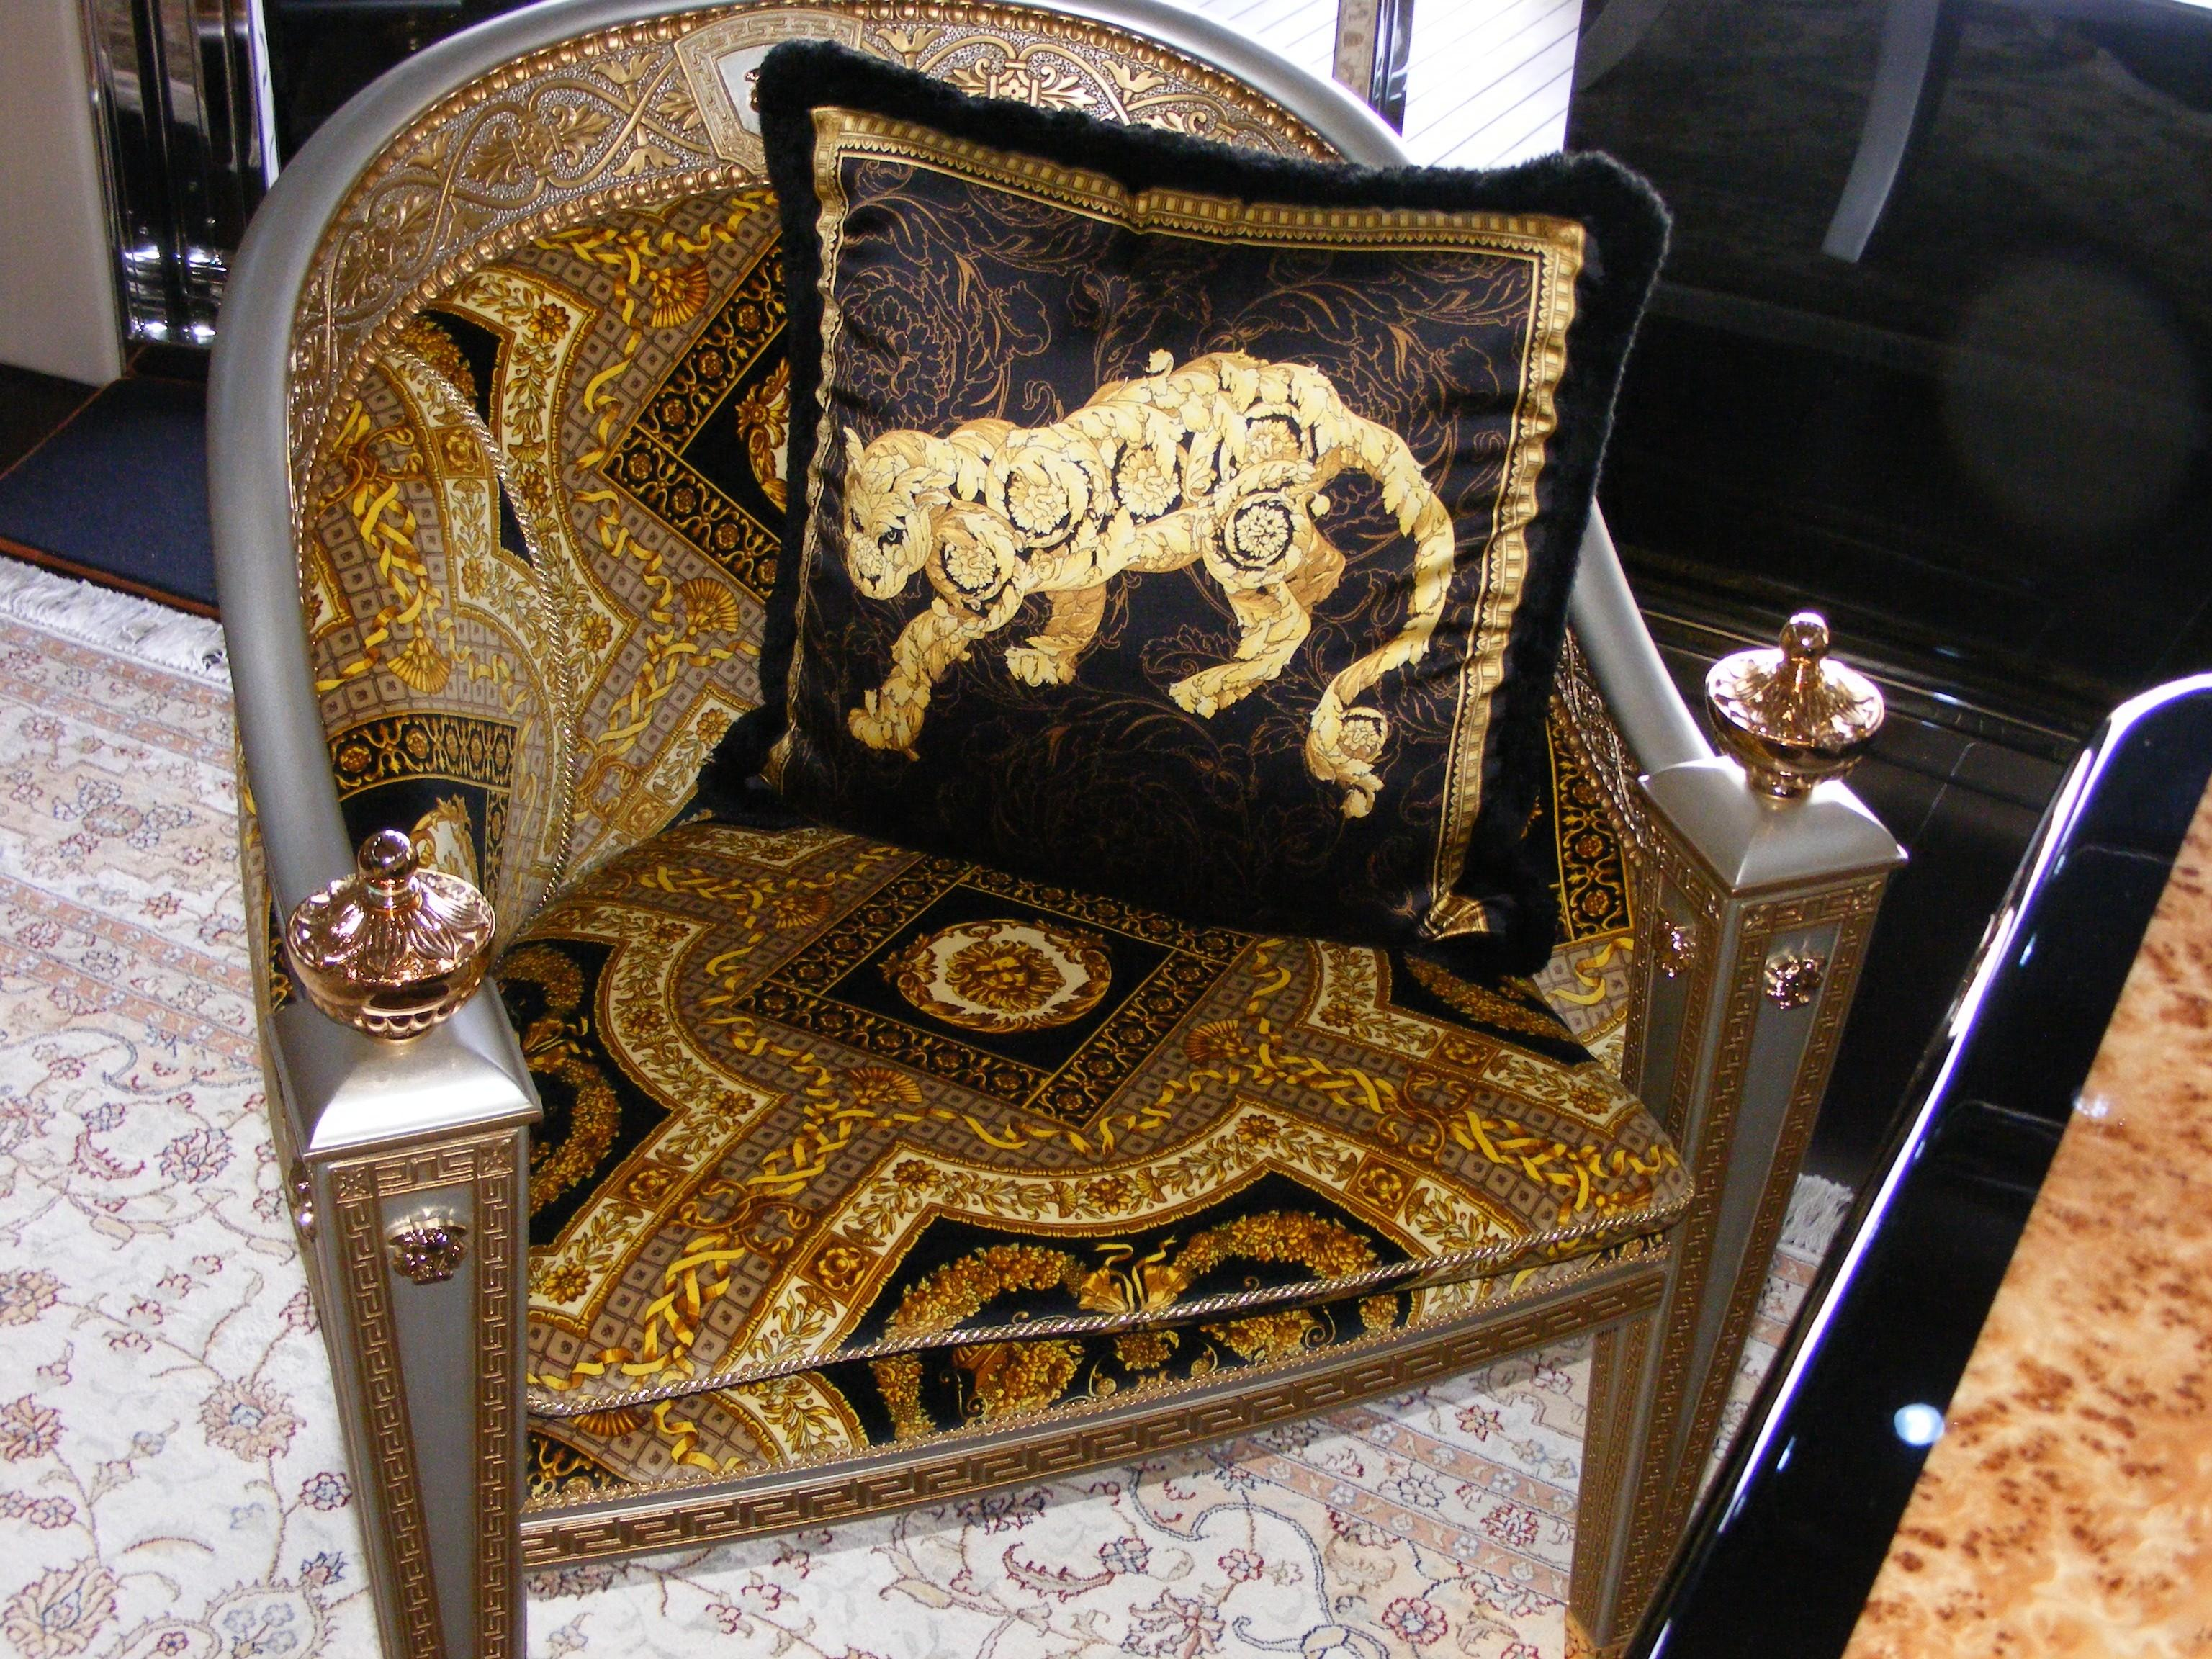 2002 Pershing 88 - Versace Chairs